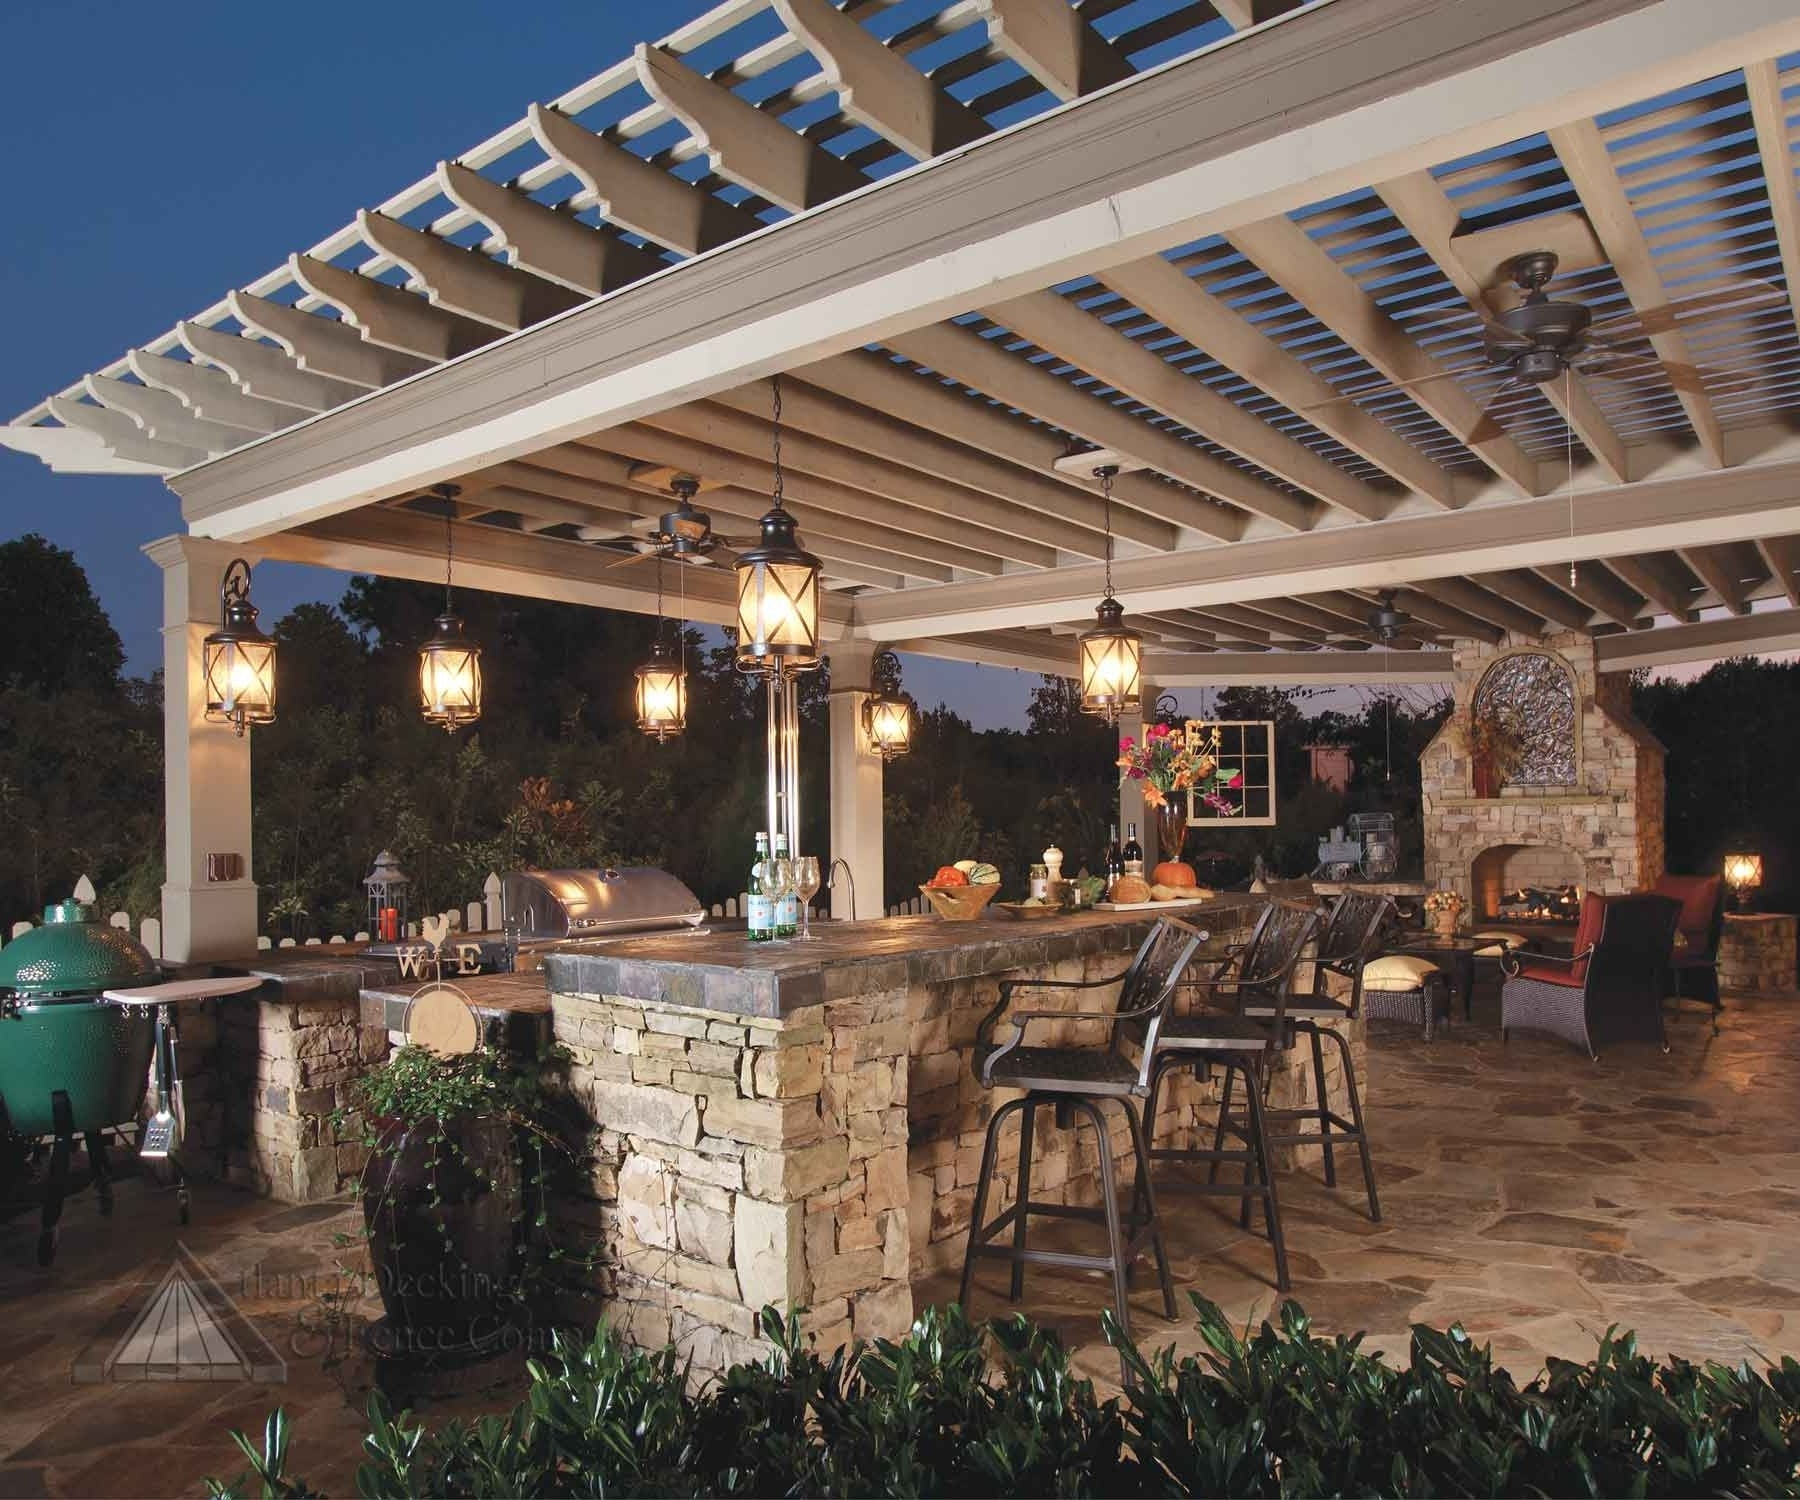 Outdoor And Patio: Outdoor Hanging Lighting In Black Lamp Case For With Regard To Fashionable Modern Outdoor String Lights At Wayfair (View 14 of 20)